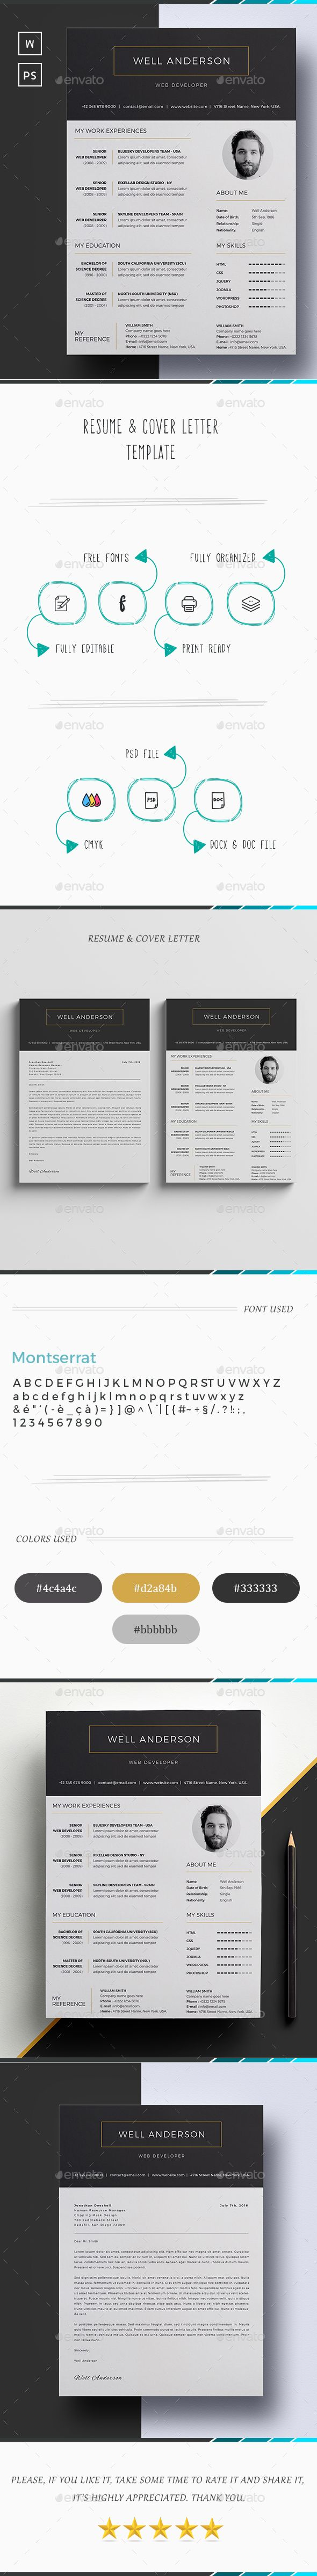 Resume 45 best Design cv images on